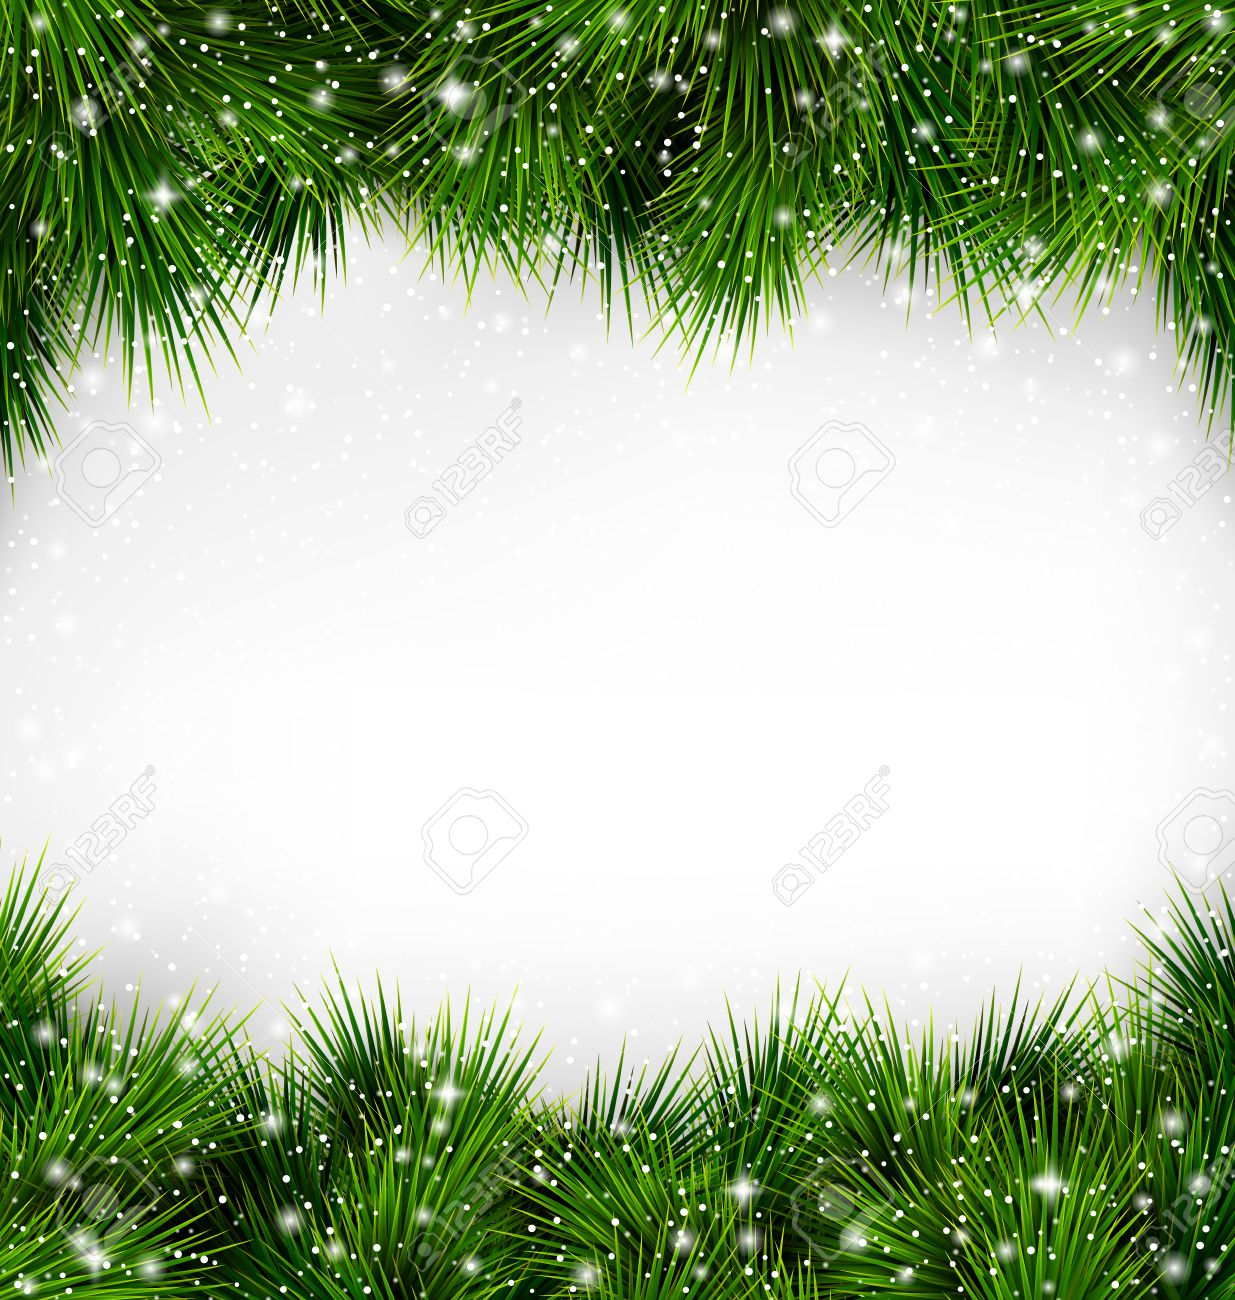 Shiny Green Christmas Tree Pine Branches Like Frame with Snowfall on White Background - 46963291